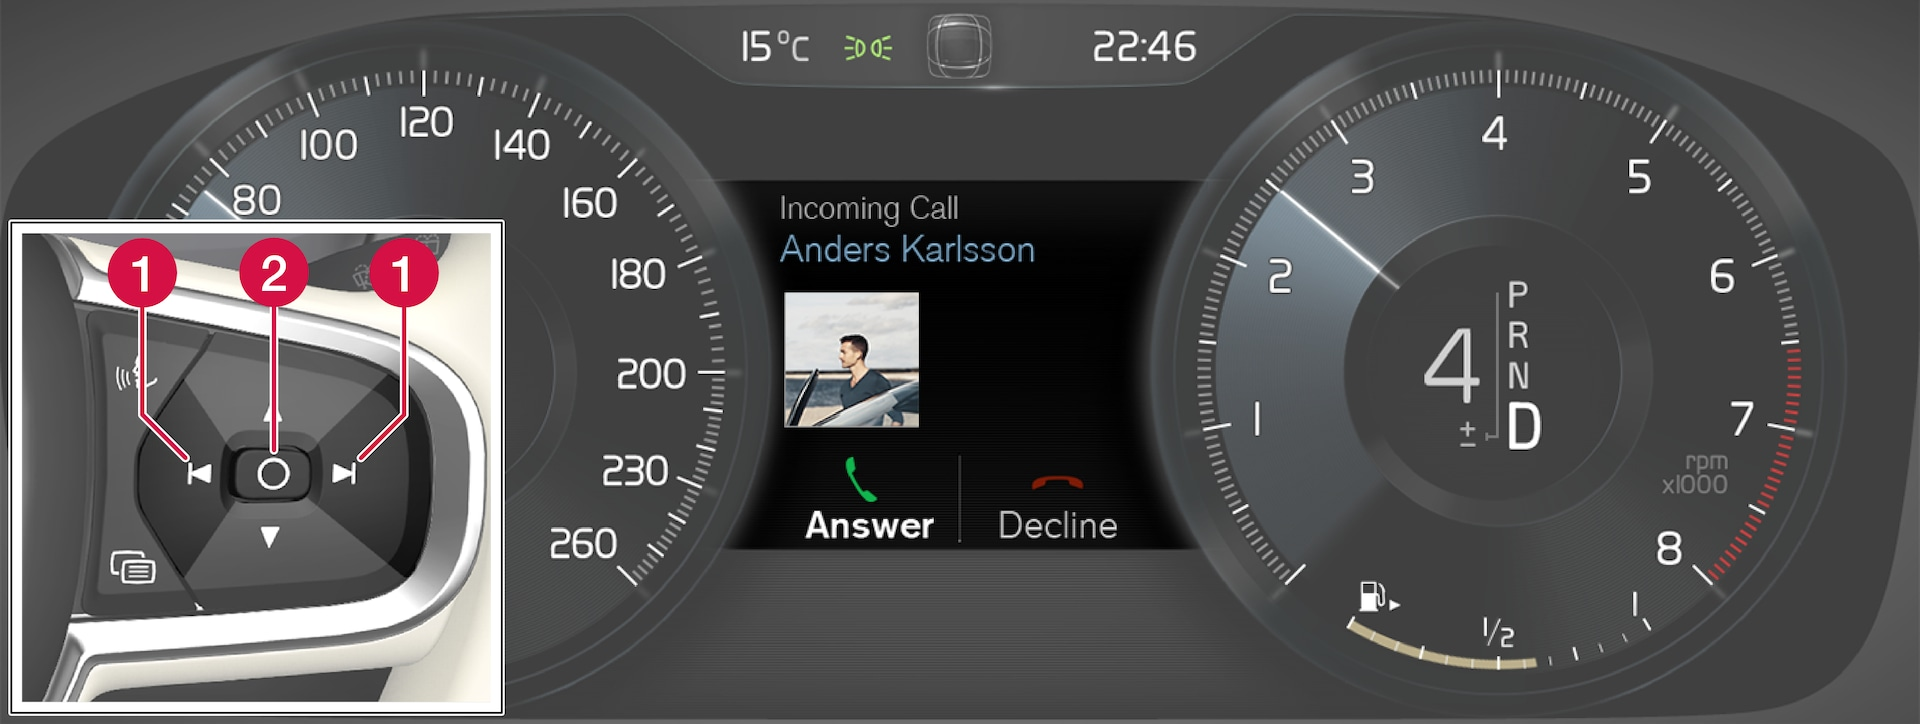 P5-1507-Incoming Call, message in driver display and right steering wheel switch